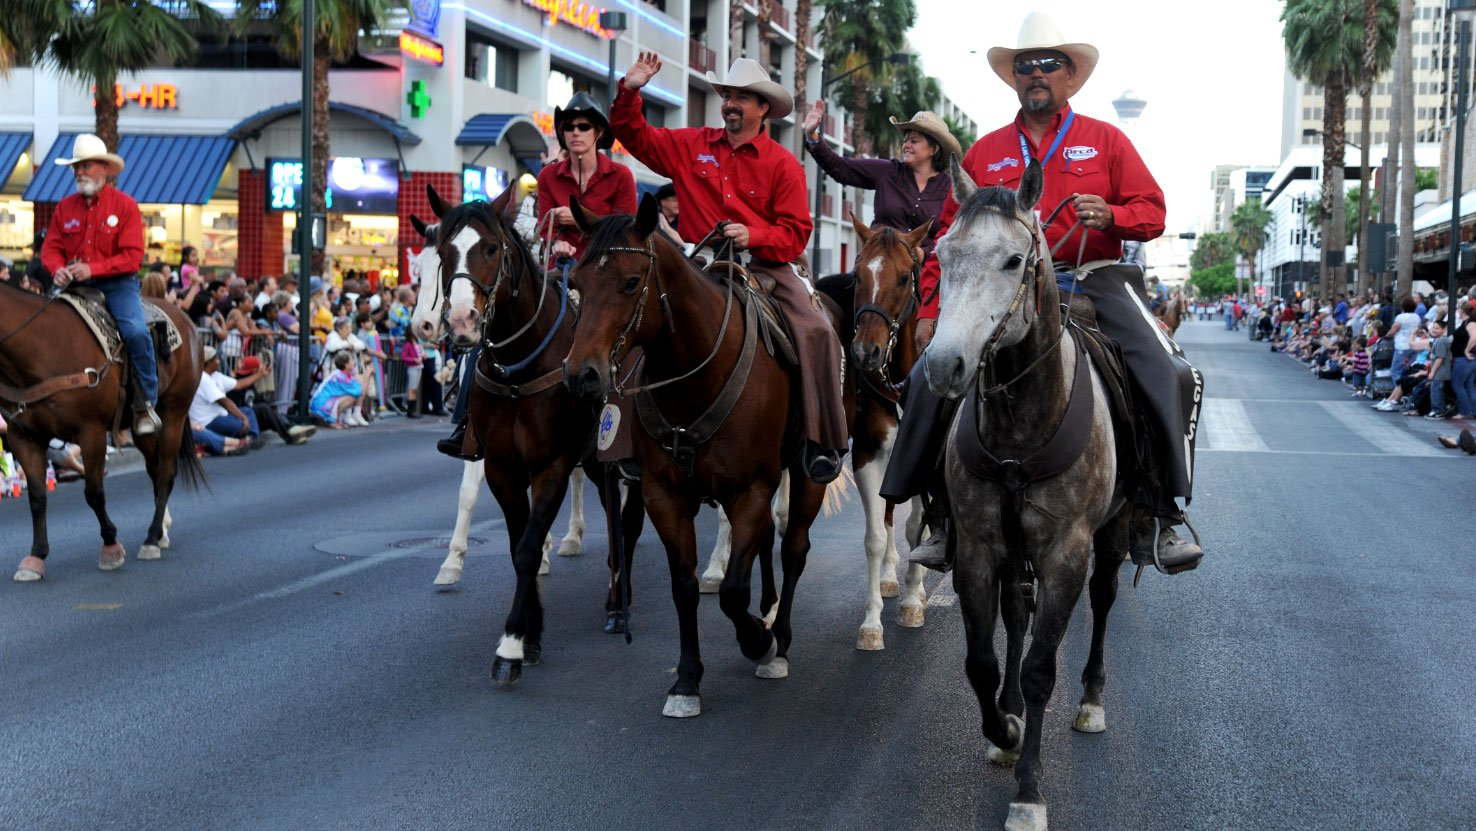 A group on horseback parades down the route of the Helldorado Parade. (City of Las Vegas)